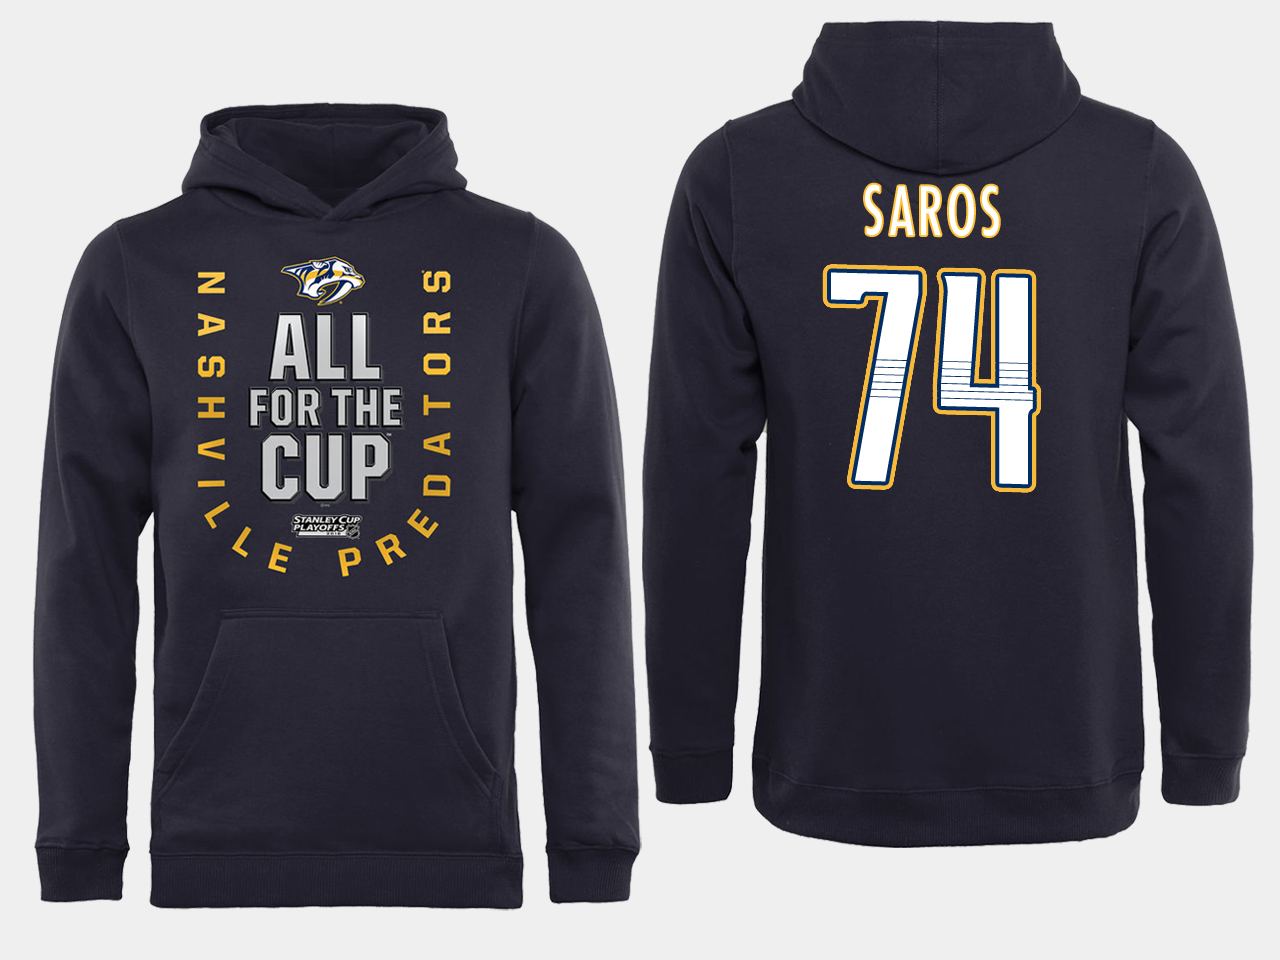 Men NHL Adidas Nashville Predators 74 Saros black ALL for the Cup hoodie